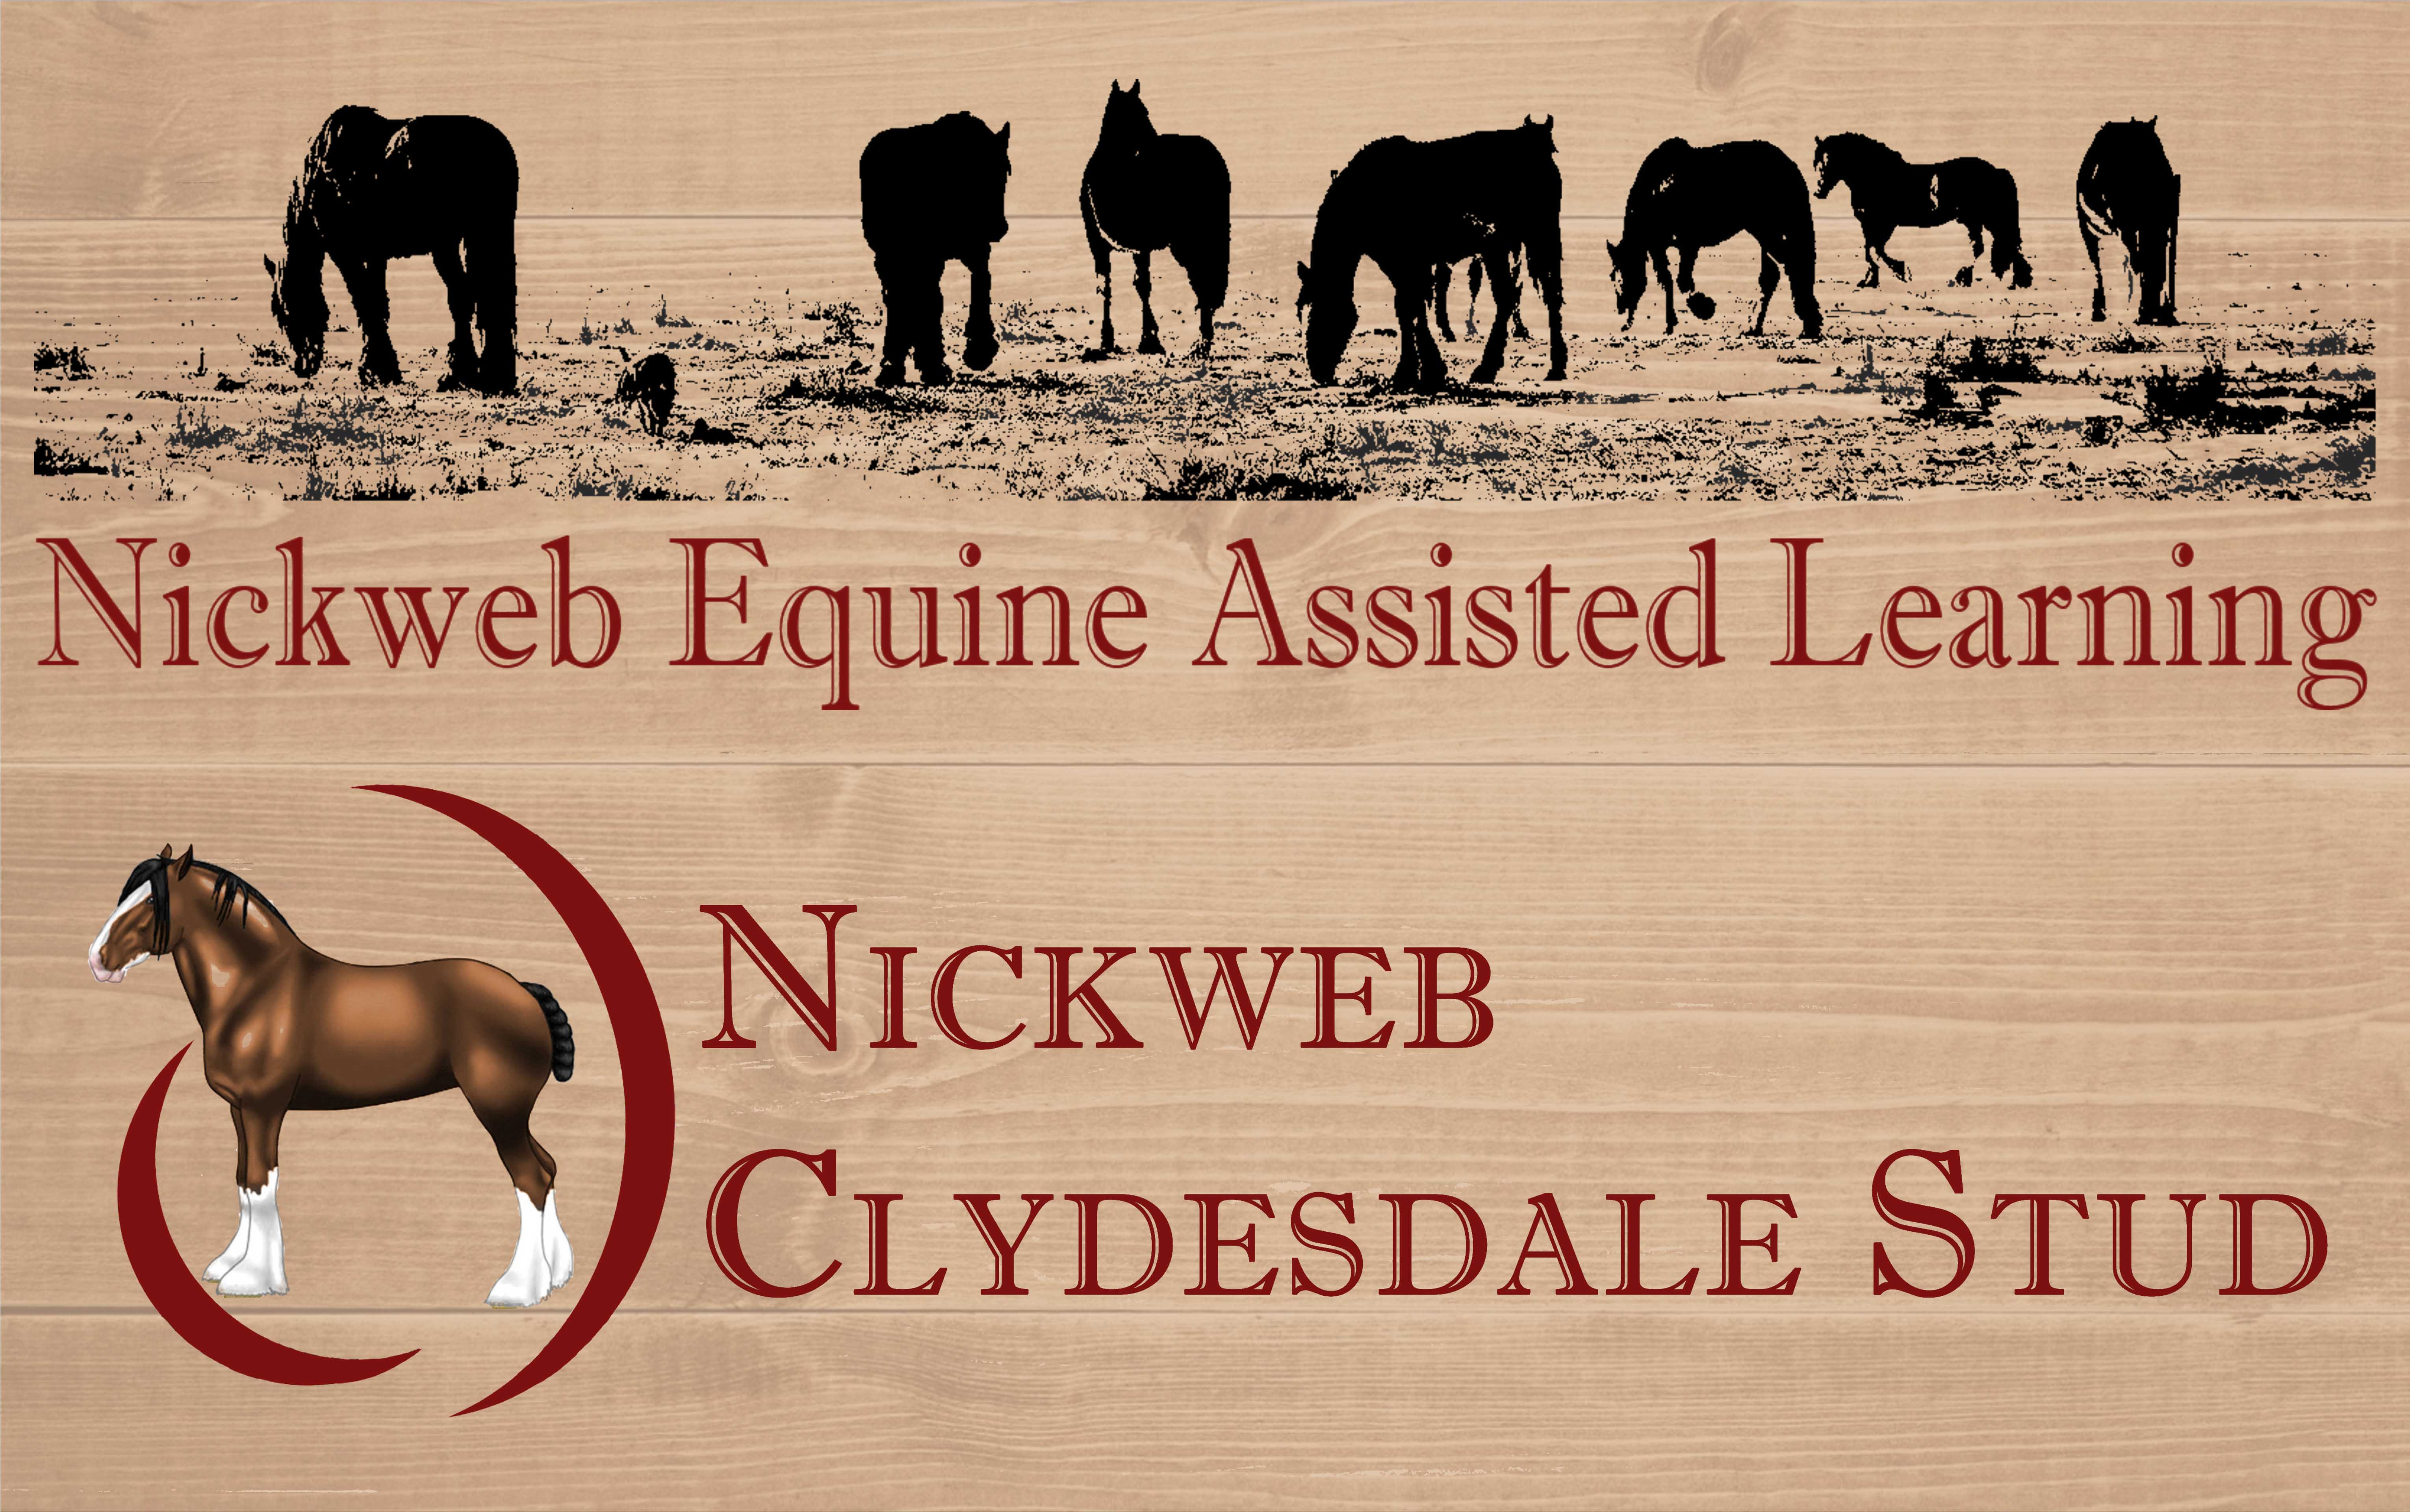 Nickweb Equine Assisted Learning